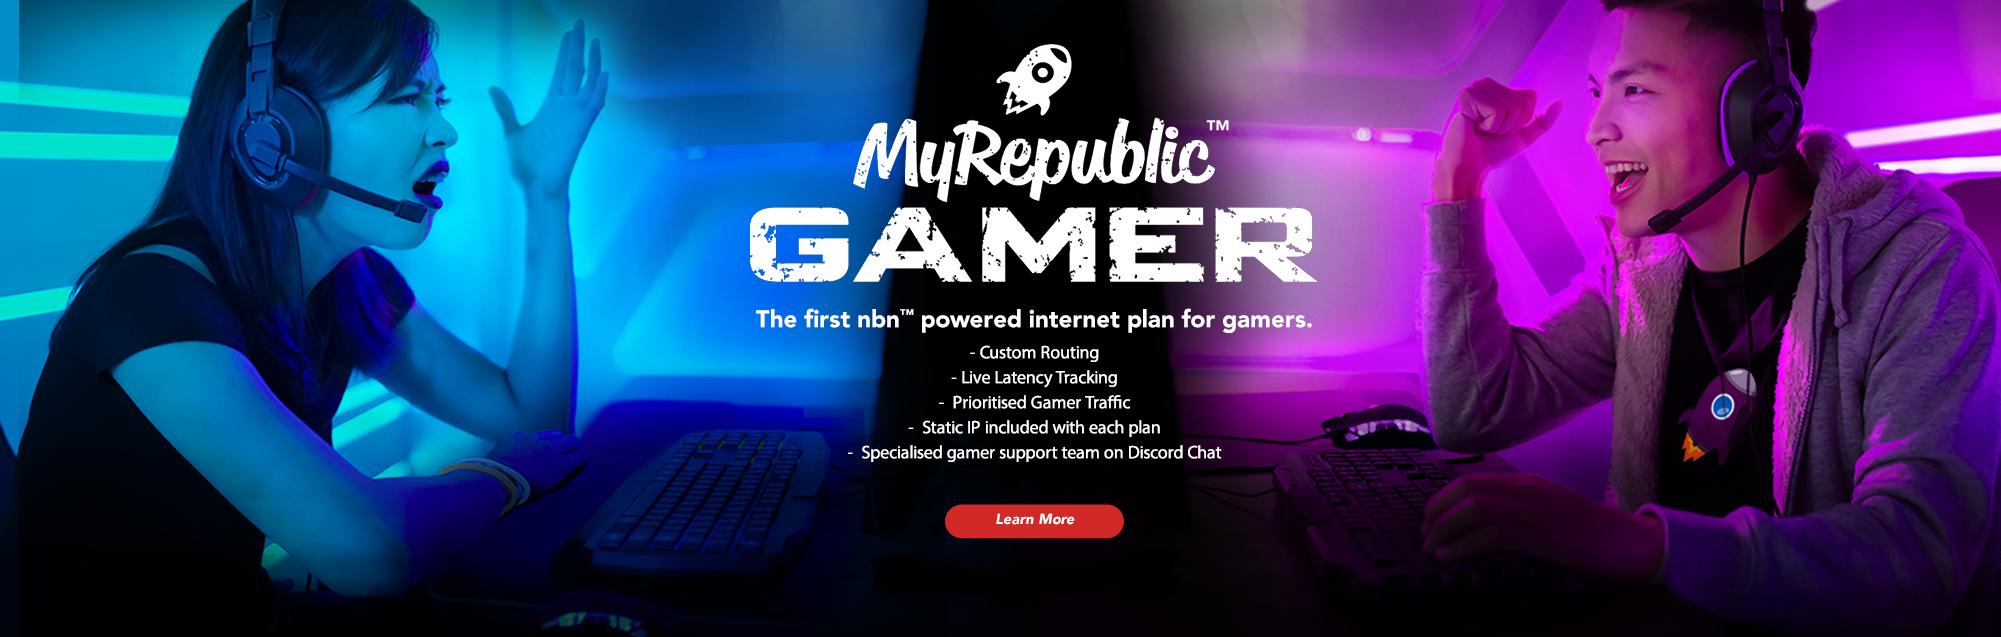 MyRepublic Gamer Banner Blue vs Pink